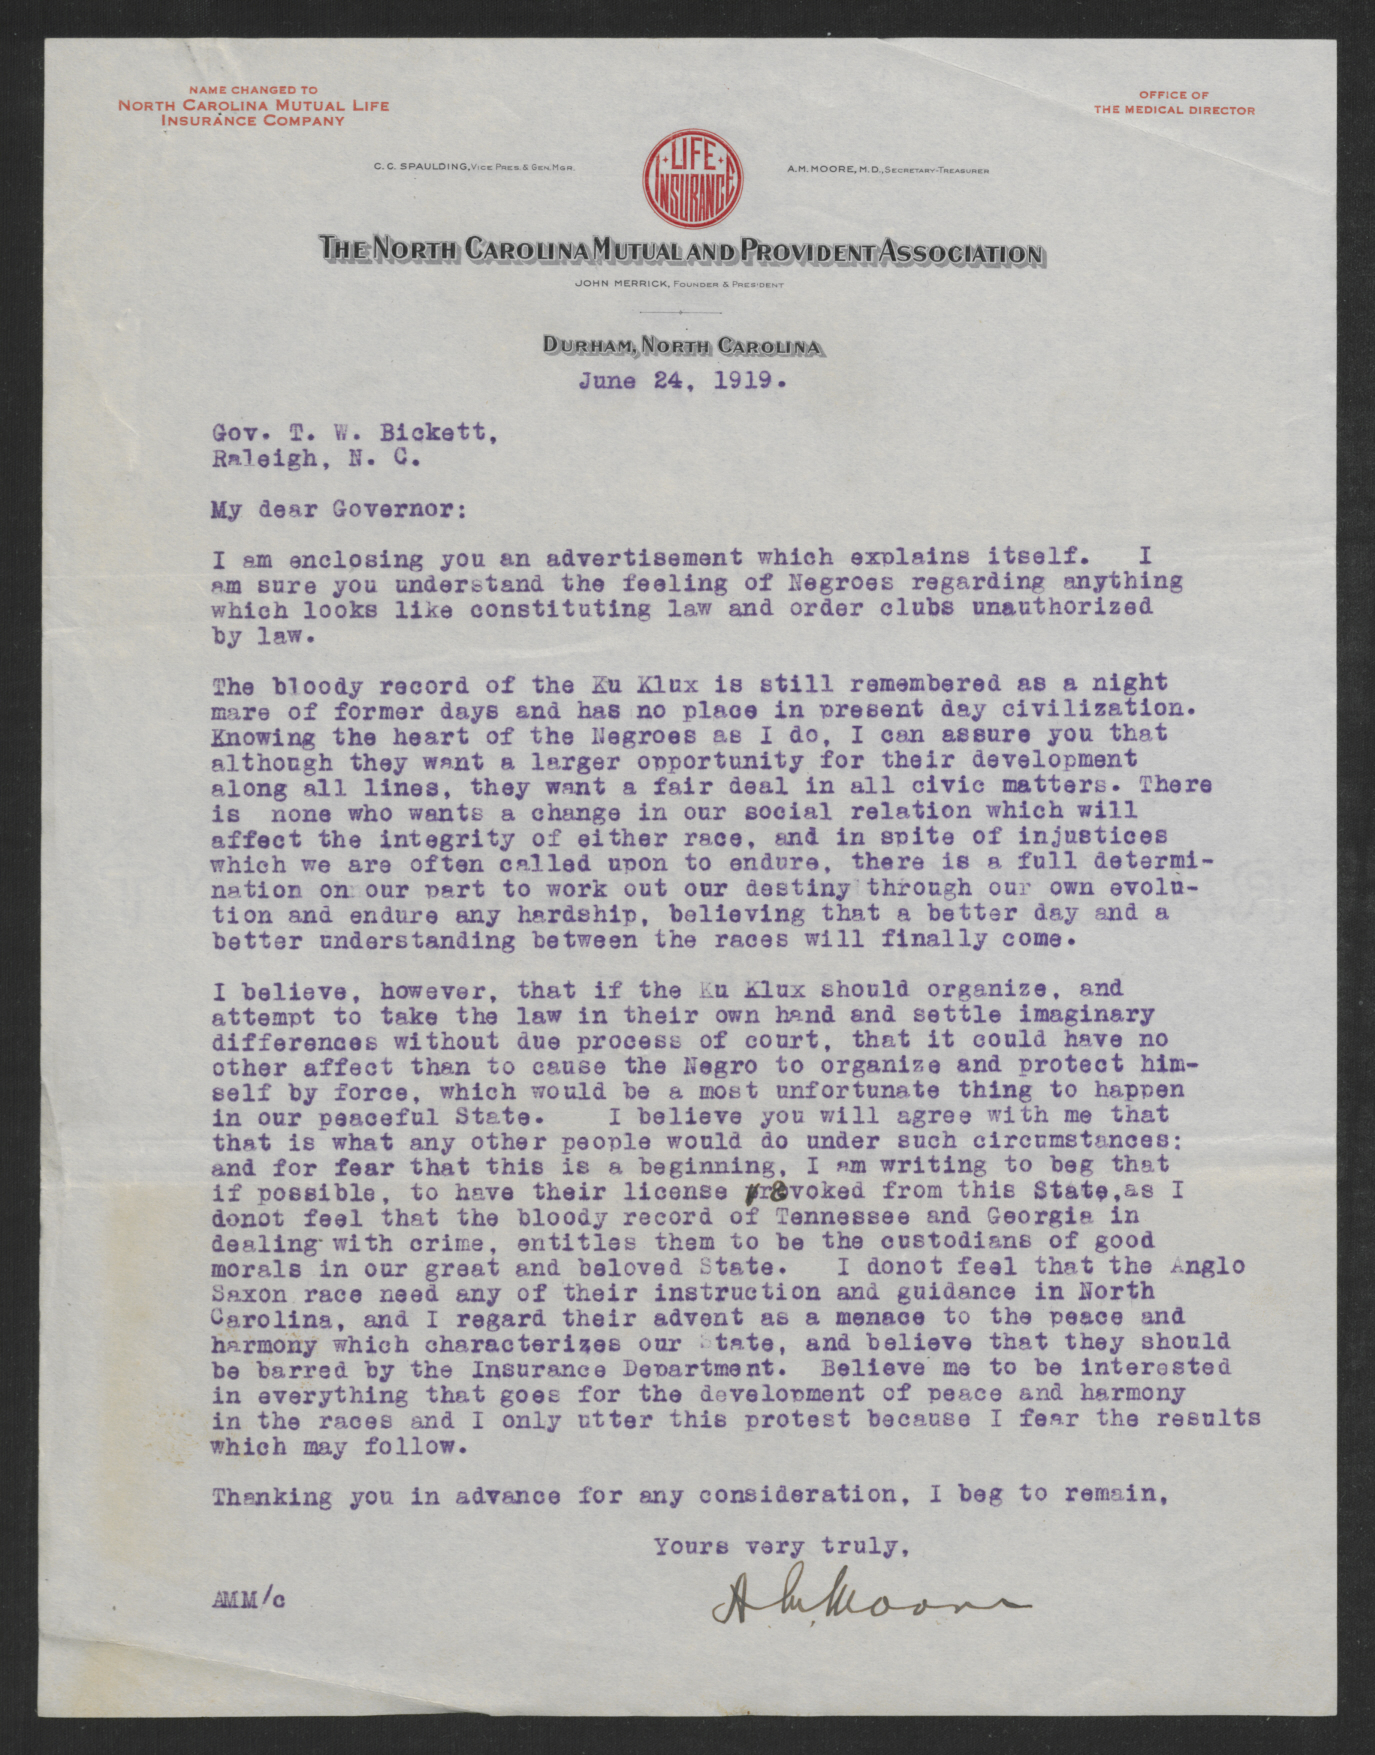 Letter from Moore to Bickett, June 24, 1919